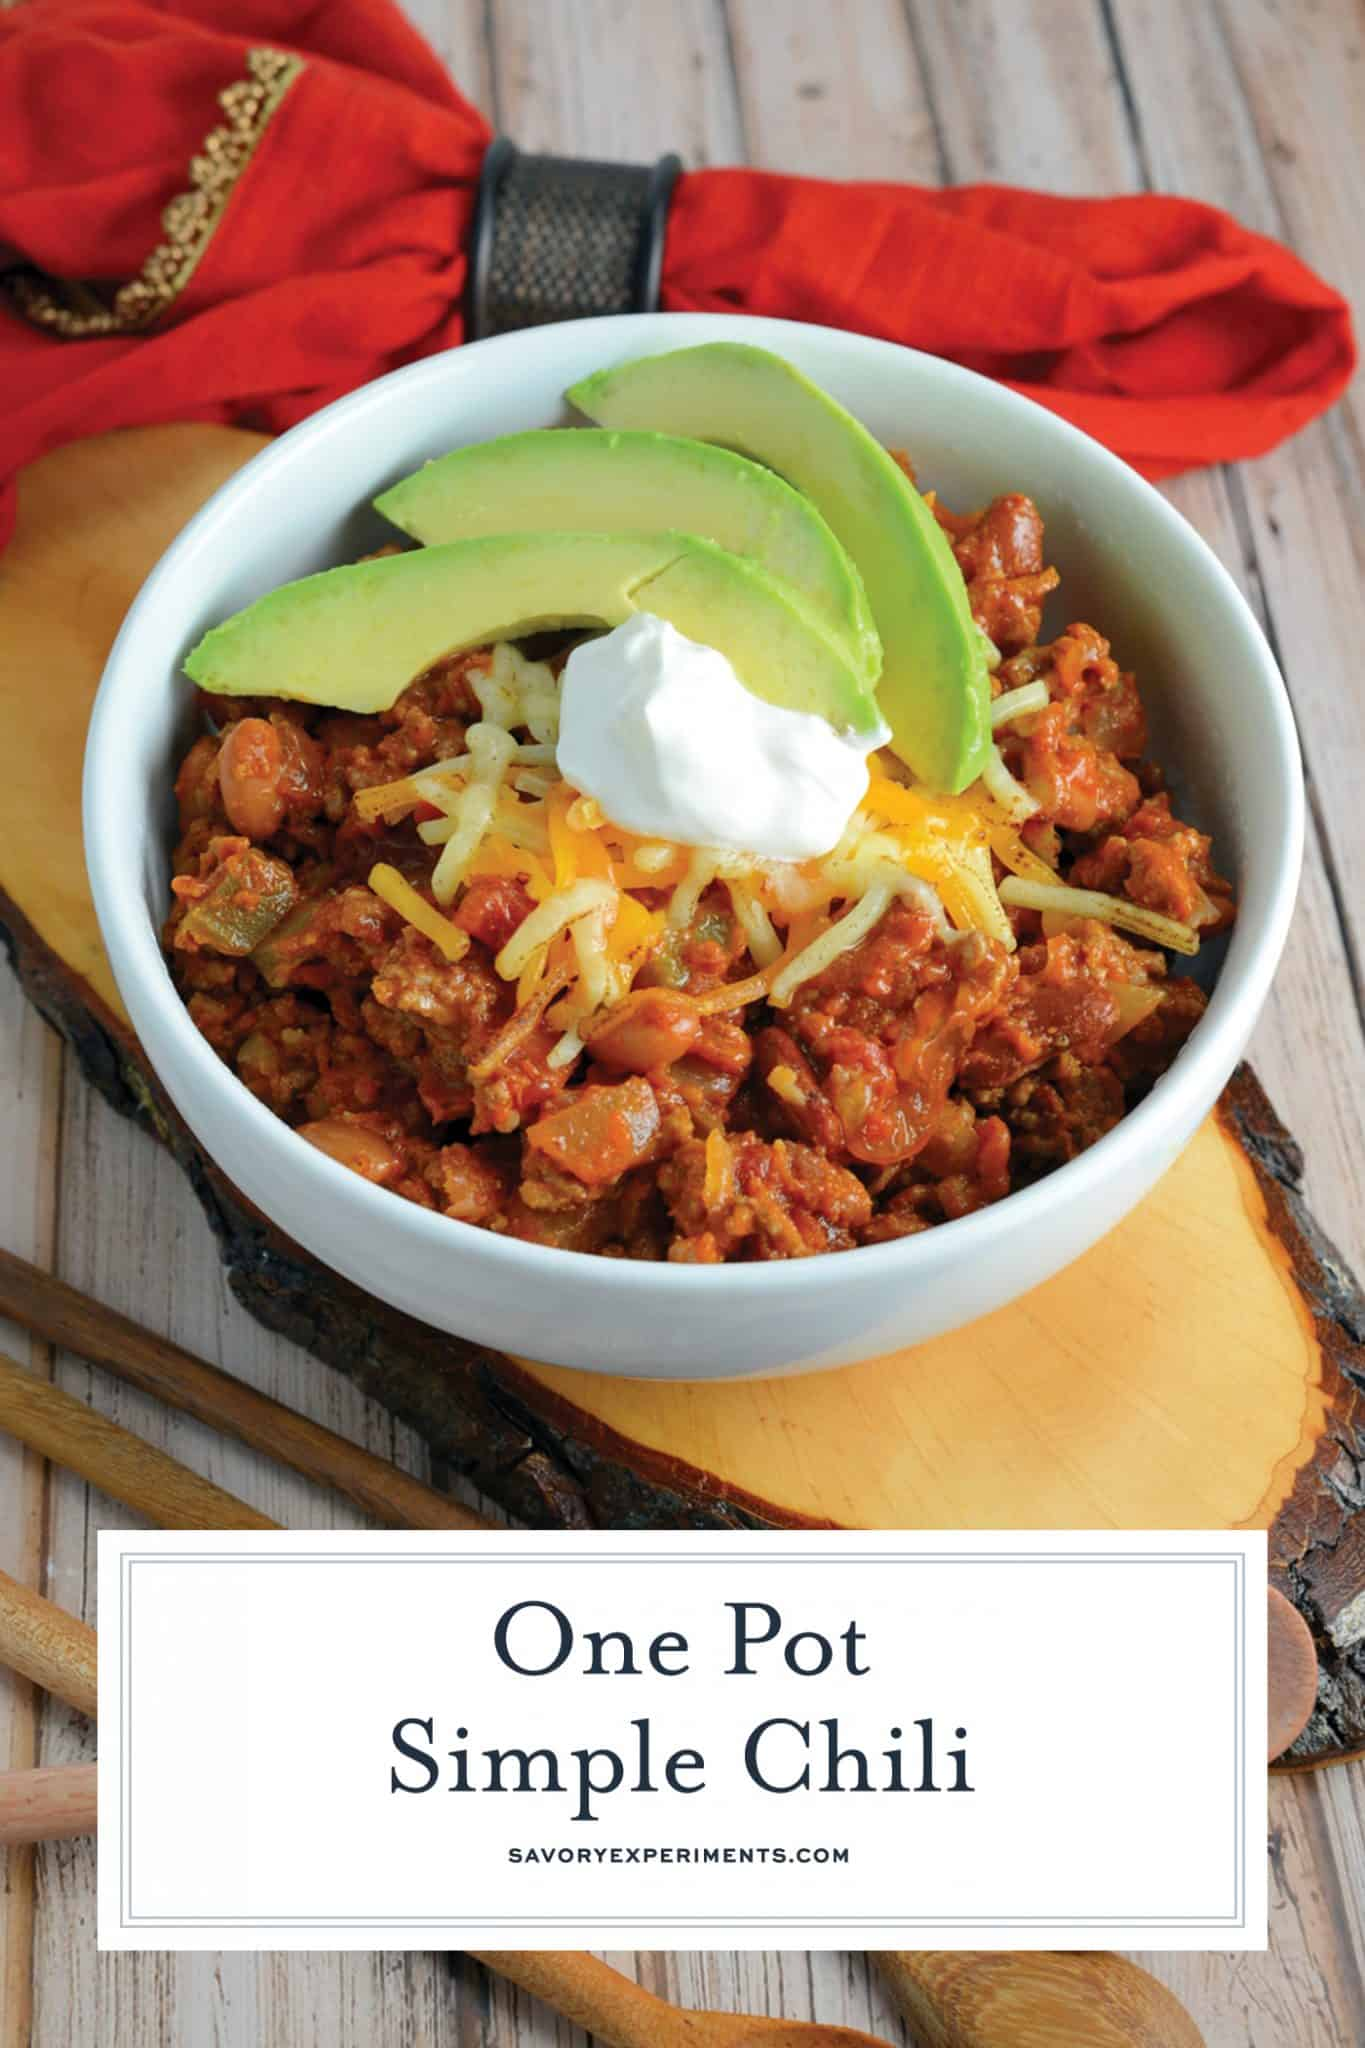 This Simple Chili only takes 30 minutes to throw together and will leave you wanting more. Lean beef, a blend of beans and spices, plus tomatoes and peppers make this packed with healthy ingredients.#simplechili #homemadechili #easychilirecipe www.savoryexperiments.com